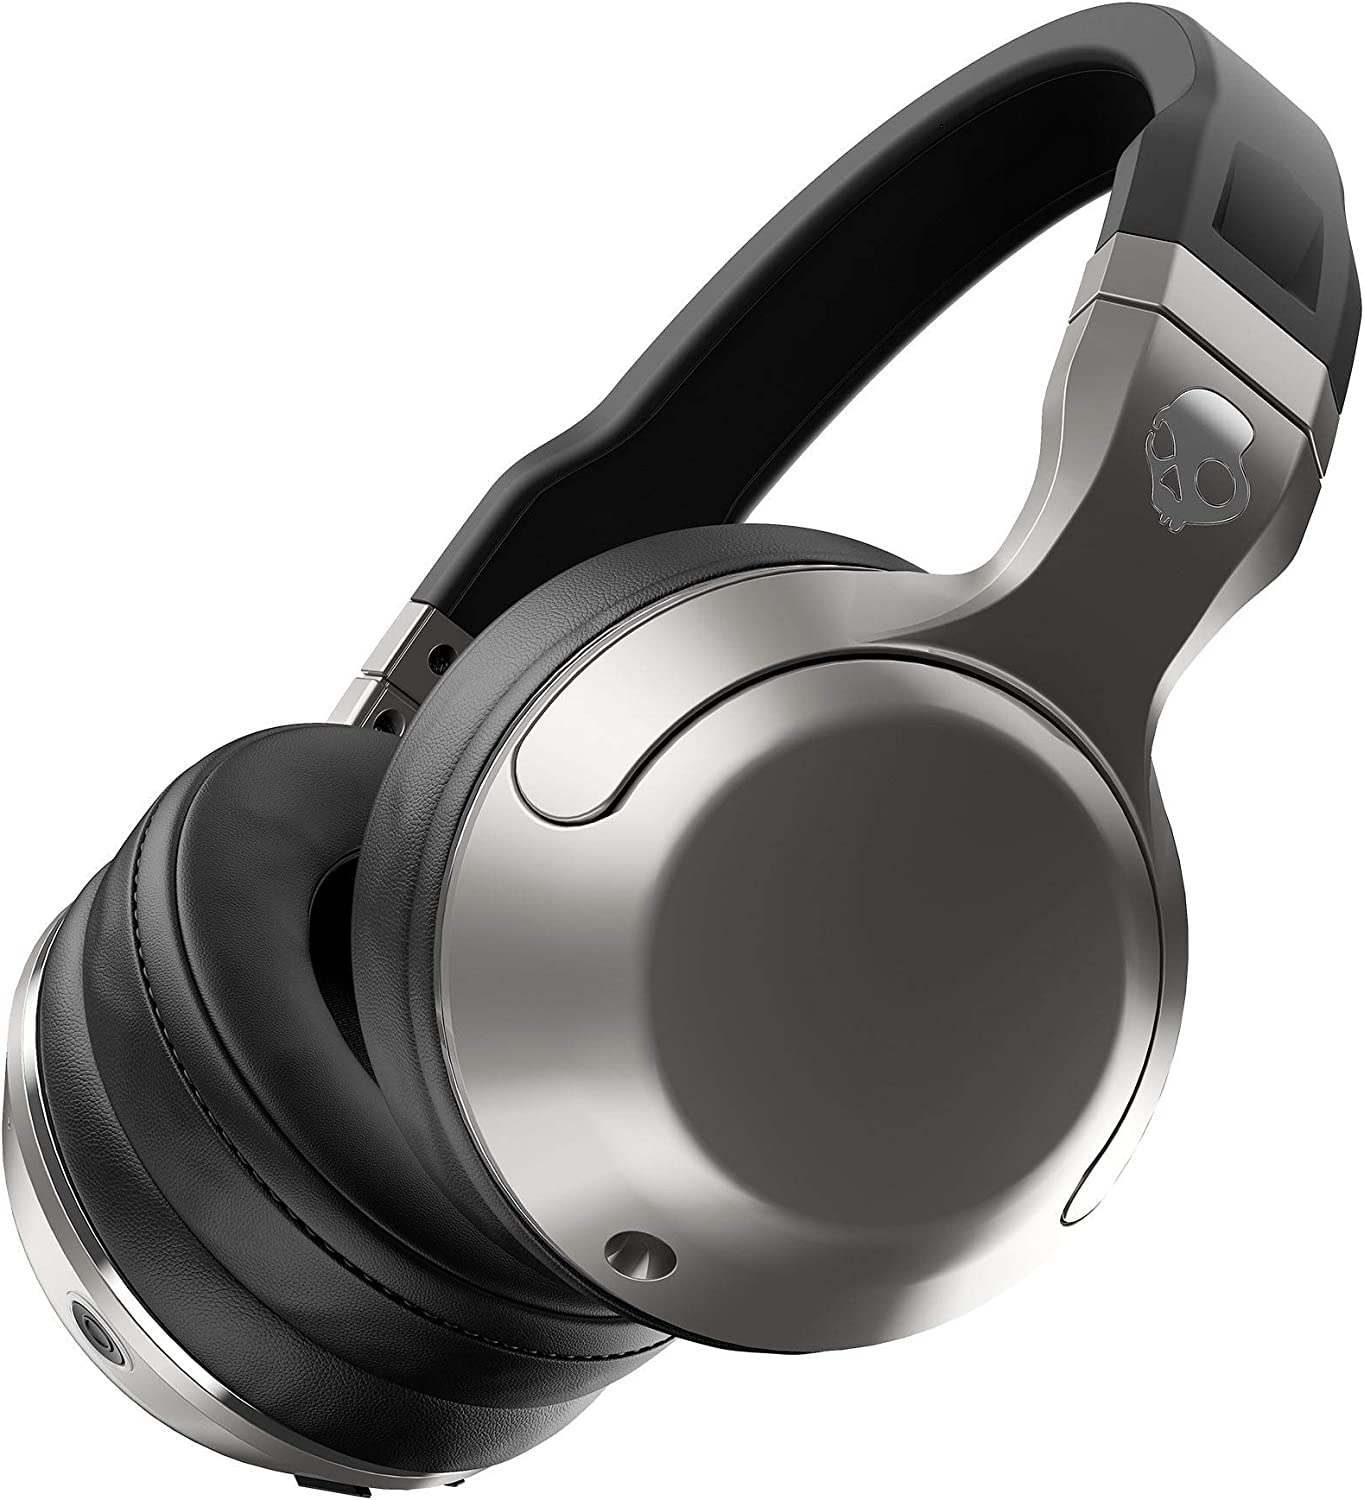 Skullcandy Hesh 2 Bluetooth Wireless Over-Ear Headphones with Microphone, Supreme Sound and Powerful Bass, 15-Hour Rechargeable Battery, Soft Synthetic Leather Ear Cushions (Renewed)